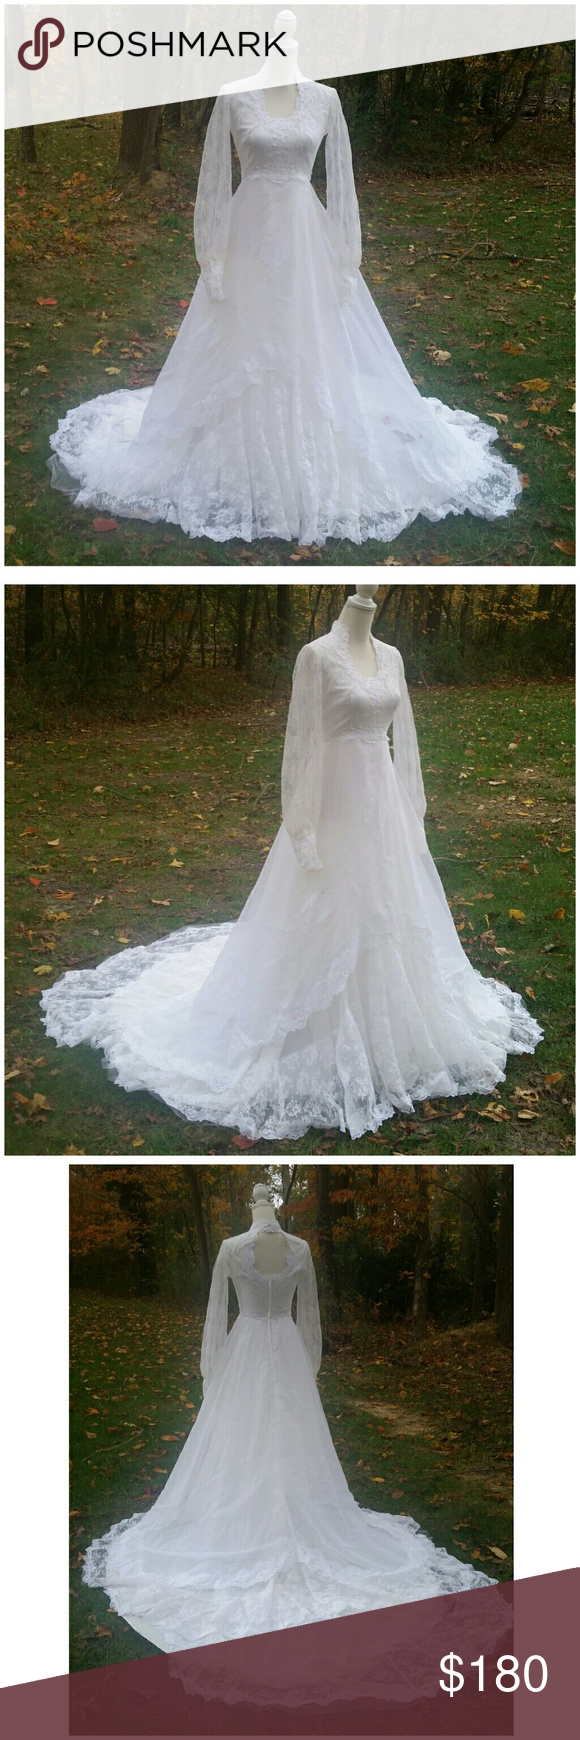 Vintage boho wedding lace dress vintage victorian boho lace wedding